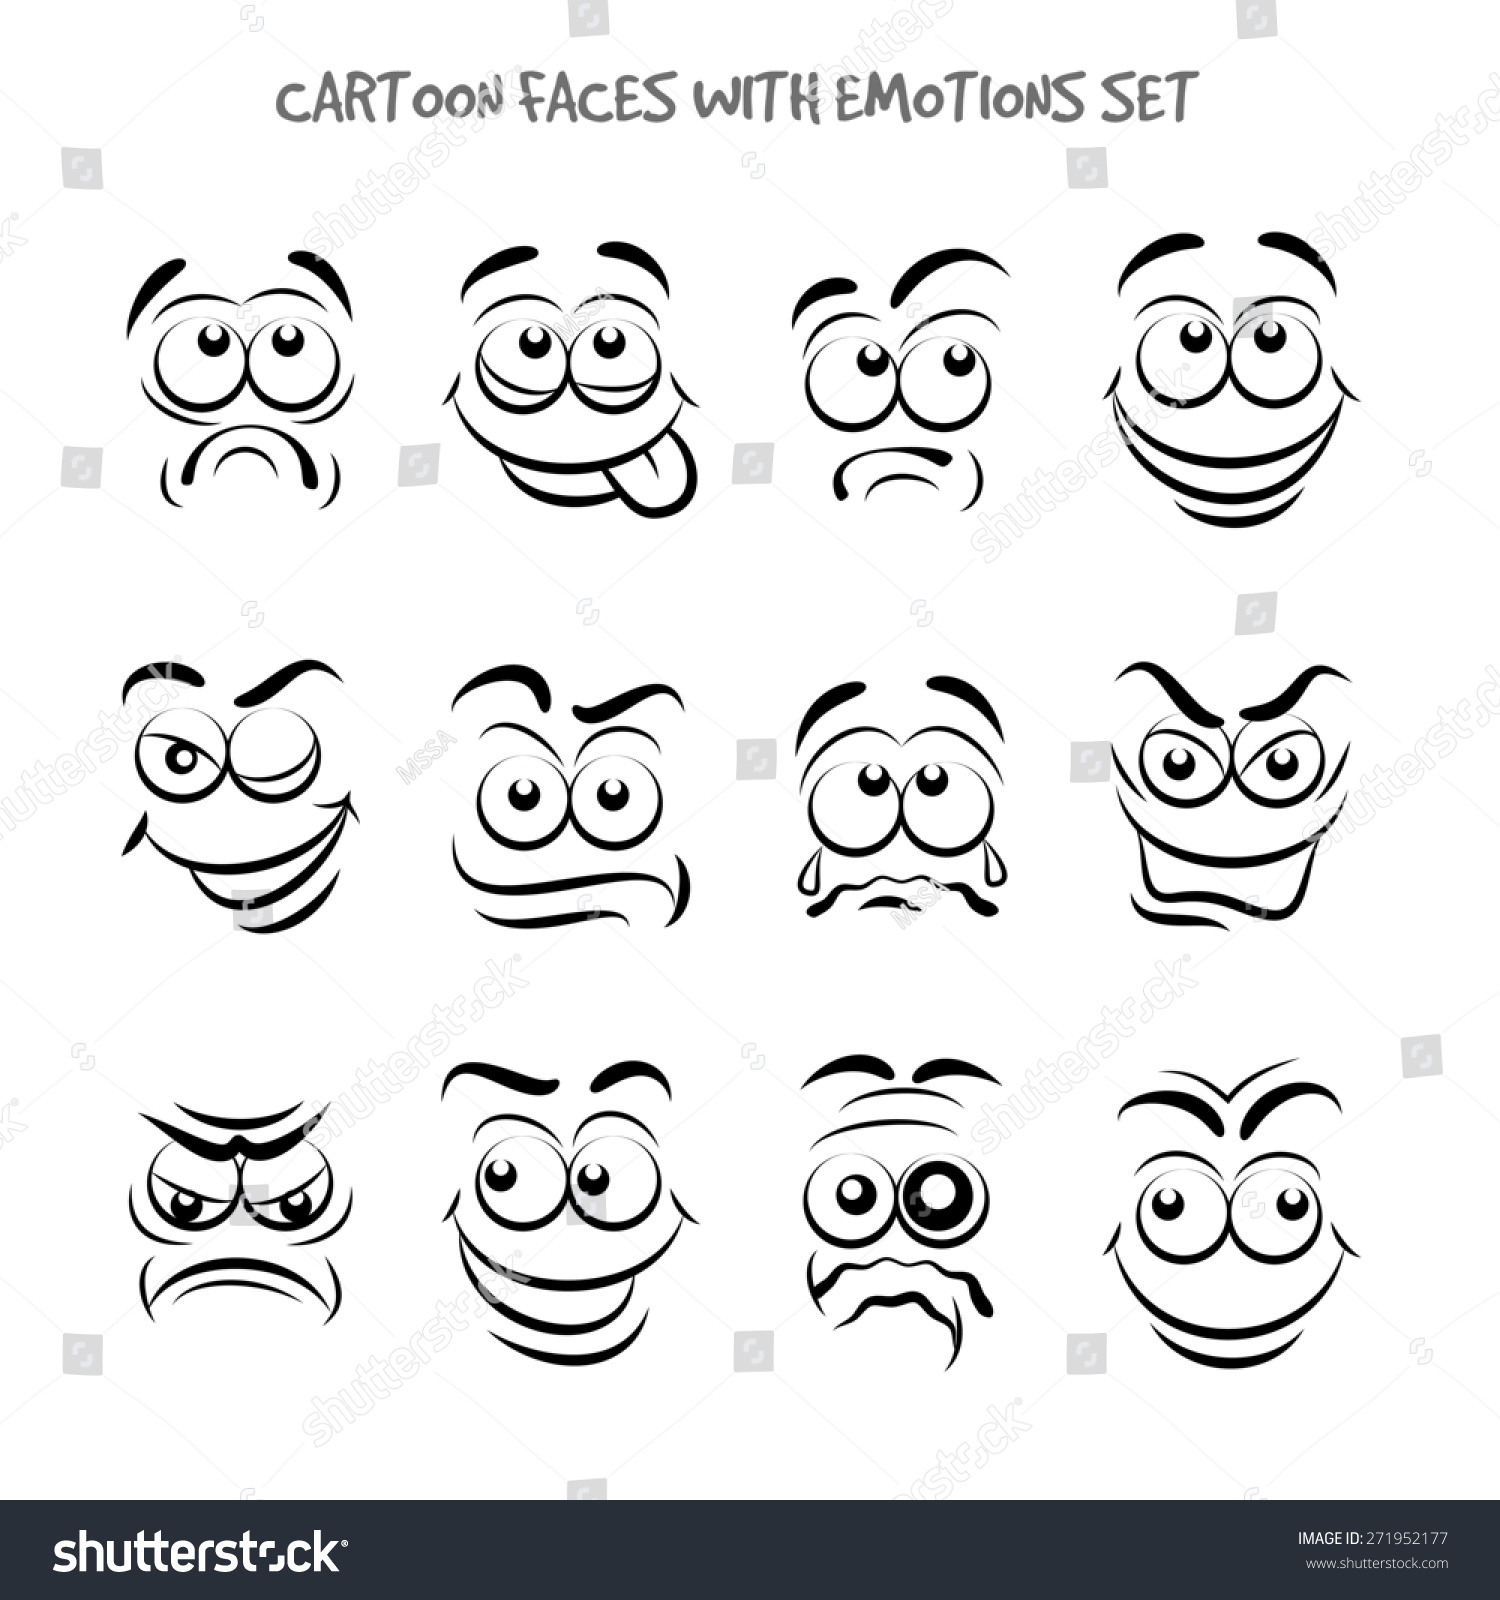 Cartoon Faces With Emotions Set Stock Photo